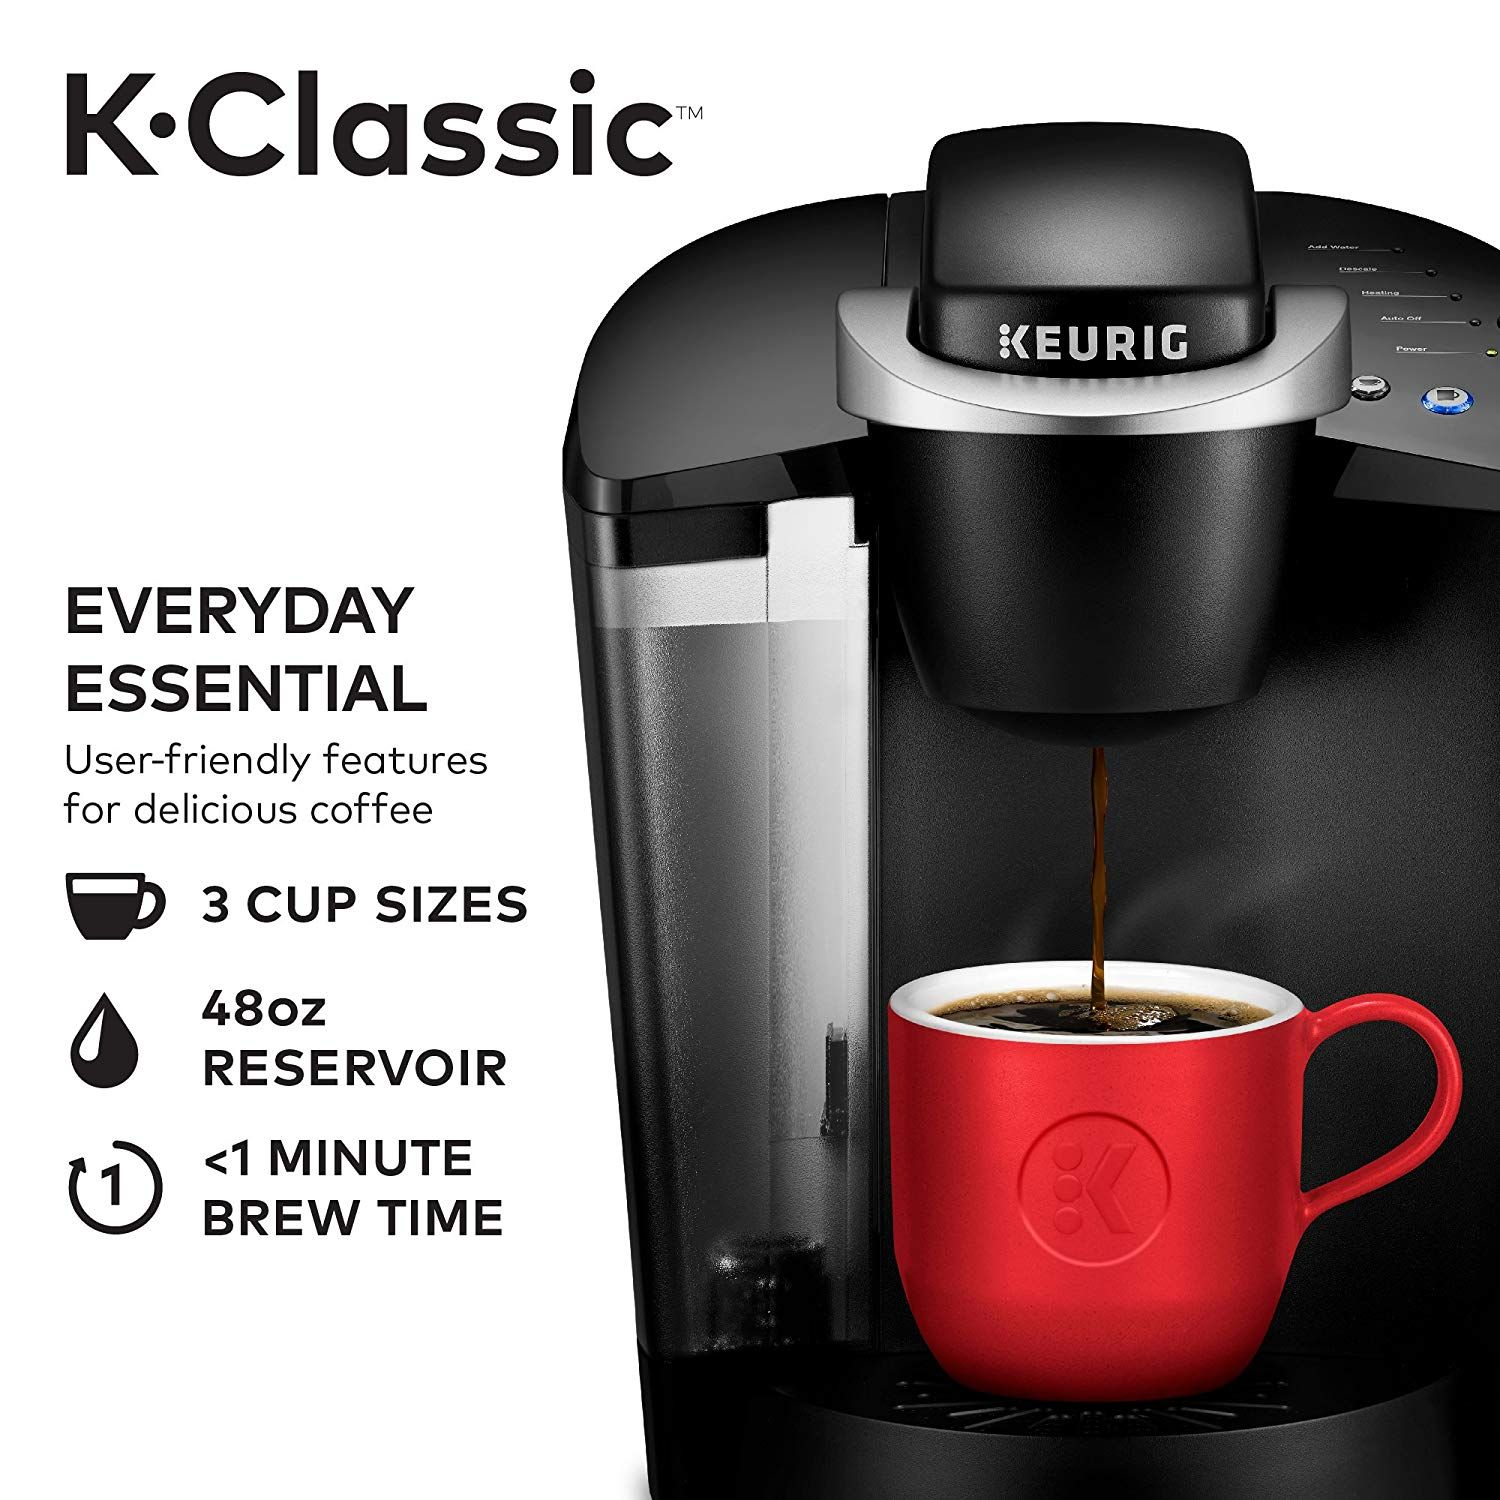 Keurig K55/KClassic Coffee Maker, KCup Pod, Single Serve